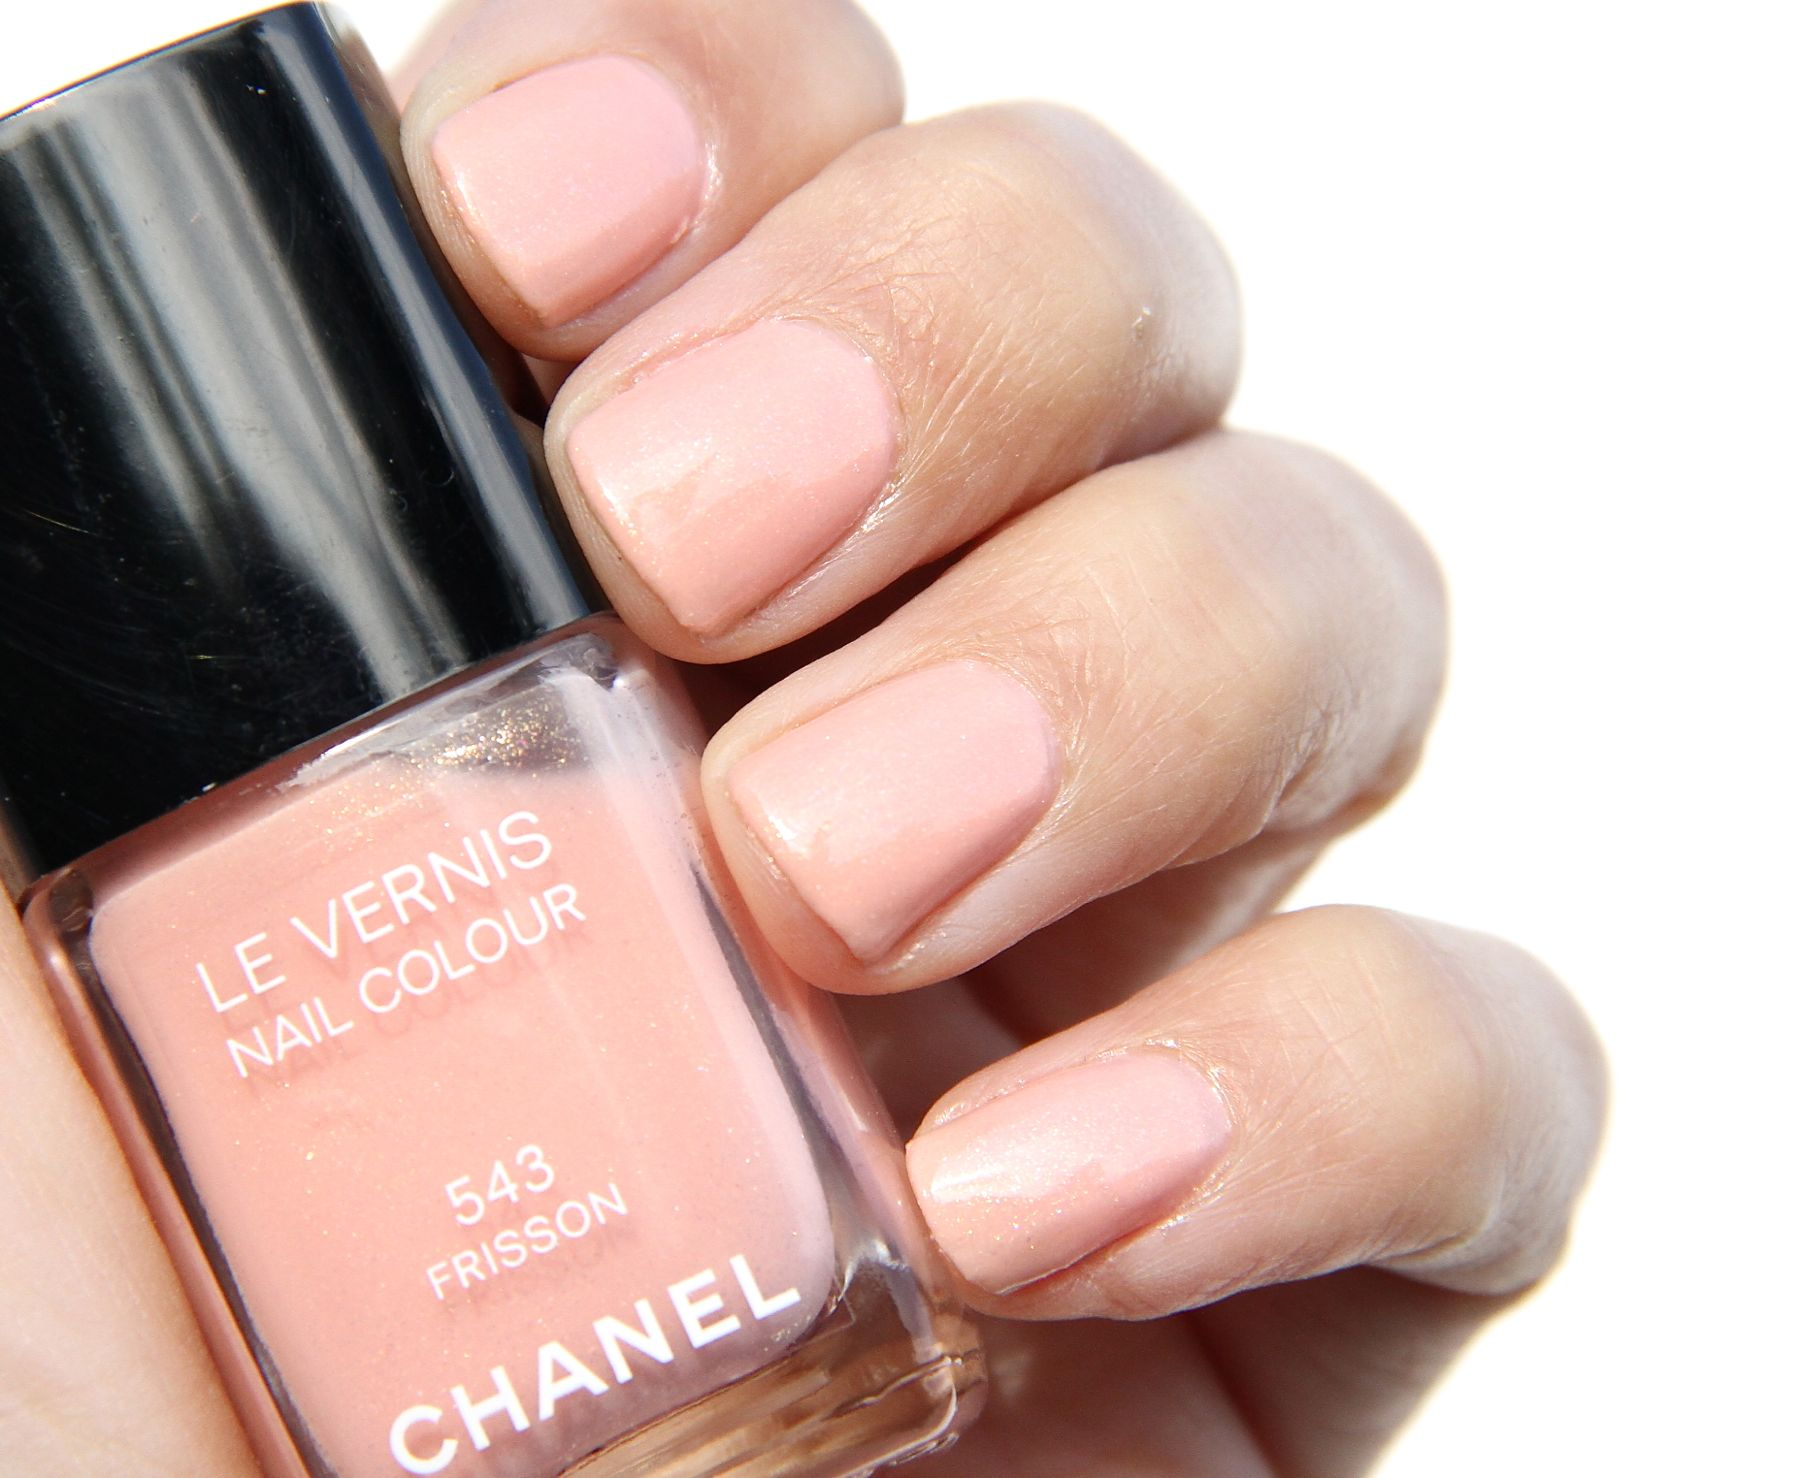 New love - Chanel Frisson 543 - Style Barista